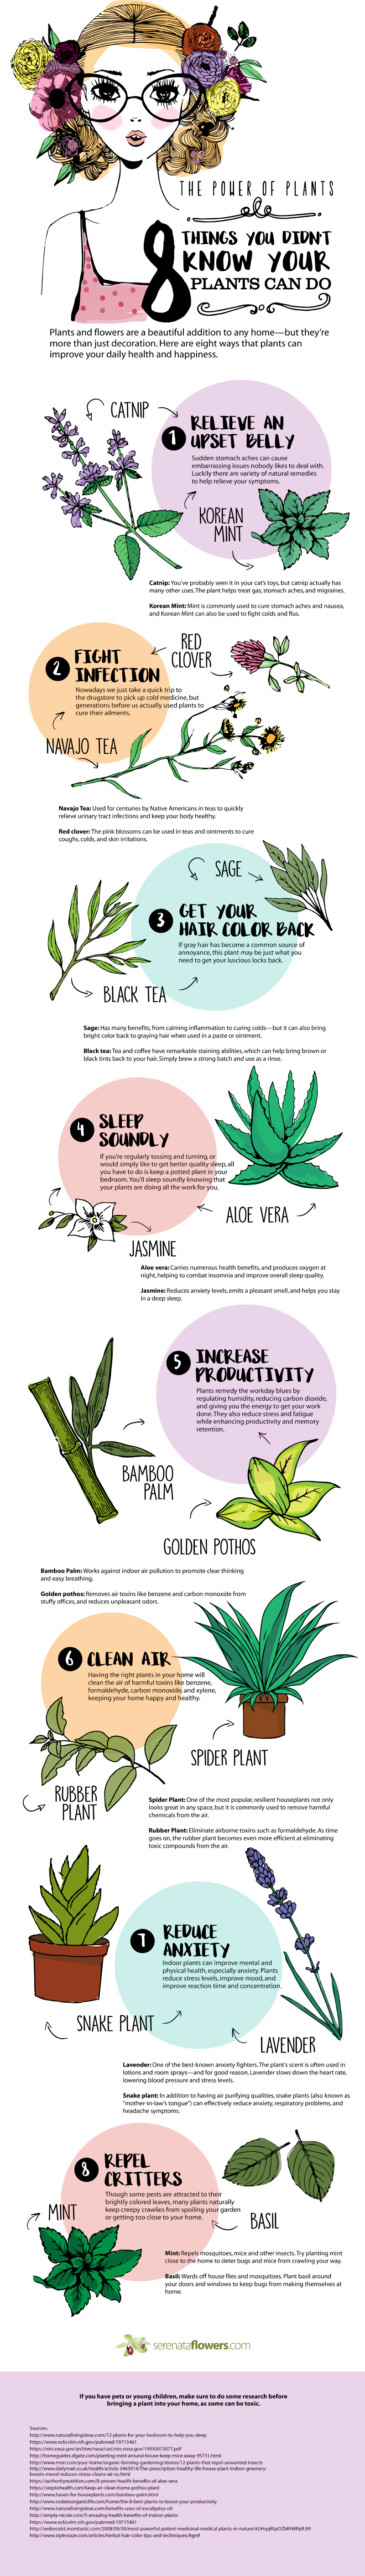 8 things you didnt know your plants can do.jpg